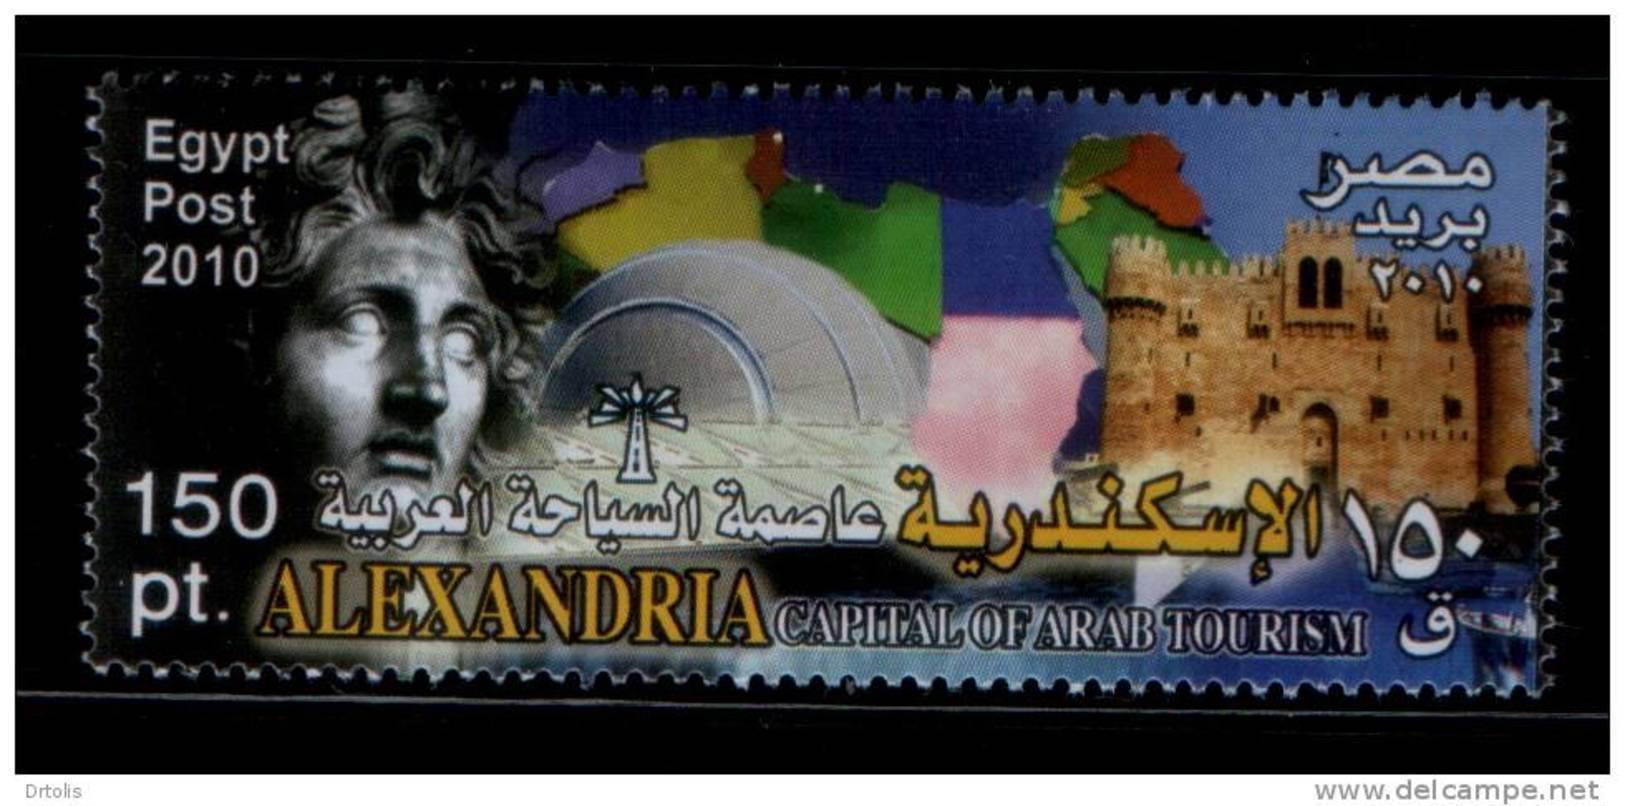 EGYPT / 2010 / ALEXANDRIA - CAPITAL FOR ARAB TOURISM / ALEX  LIGHTHOUSE- LIBRARY / MAP OF ARAB COUNTRIES / MNH / VF  . - Nuovi